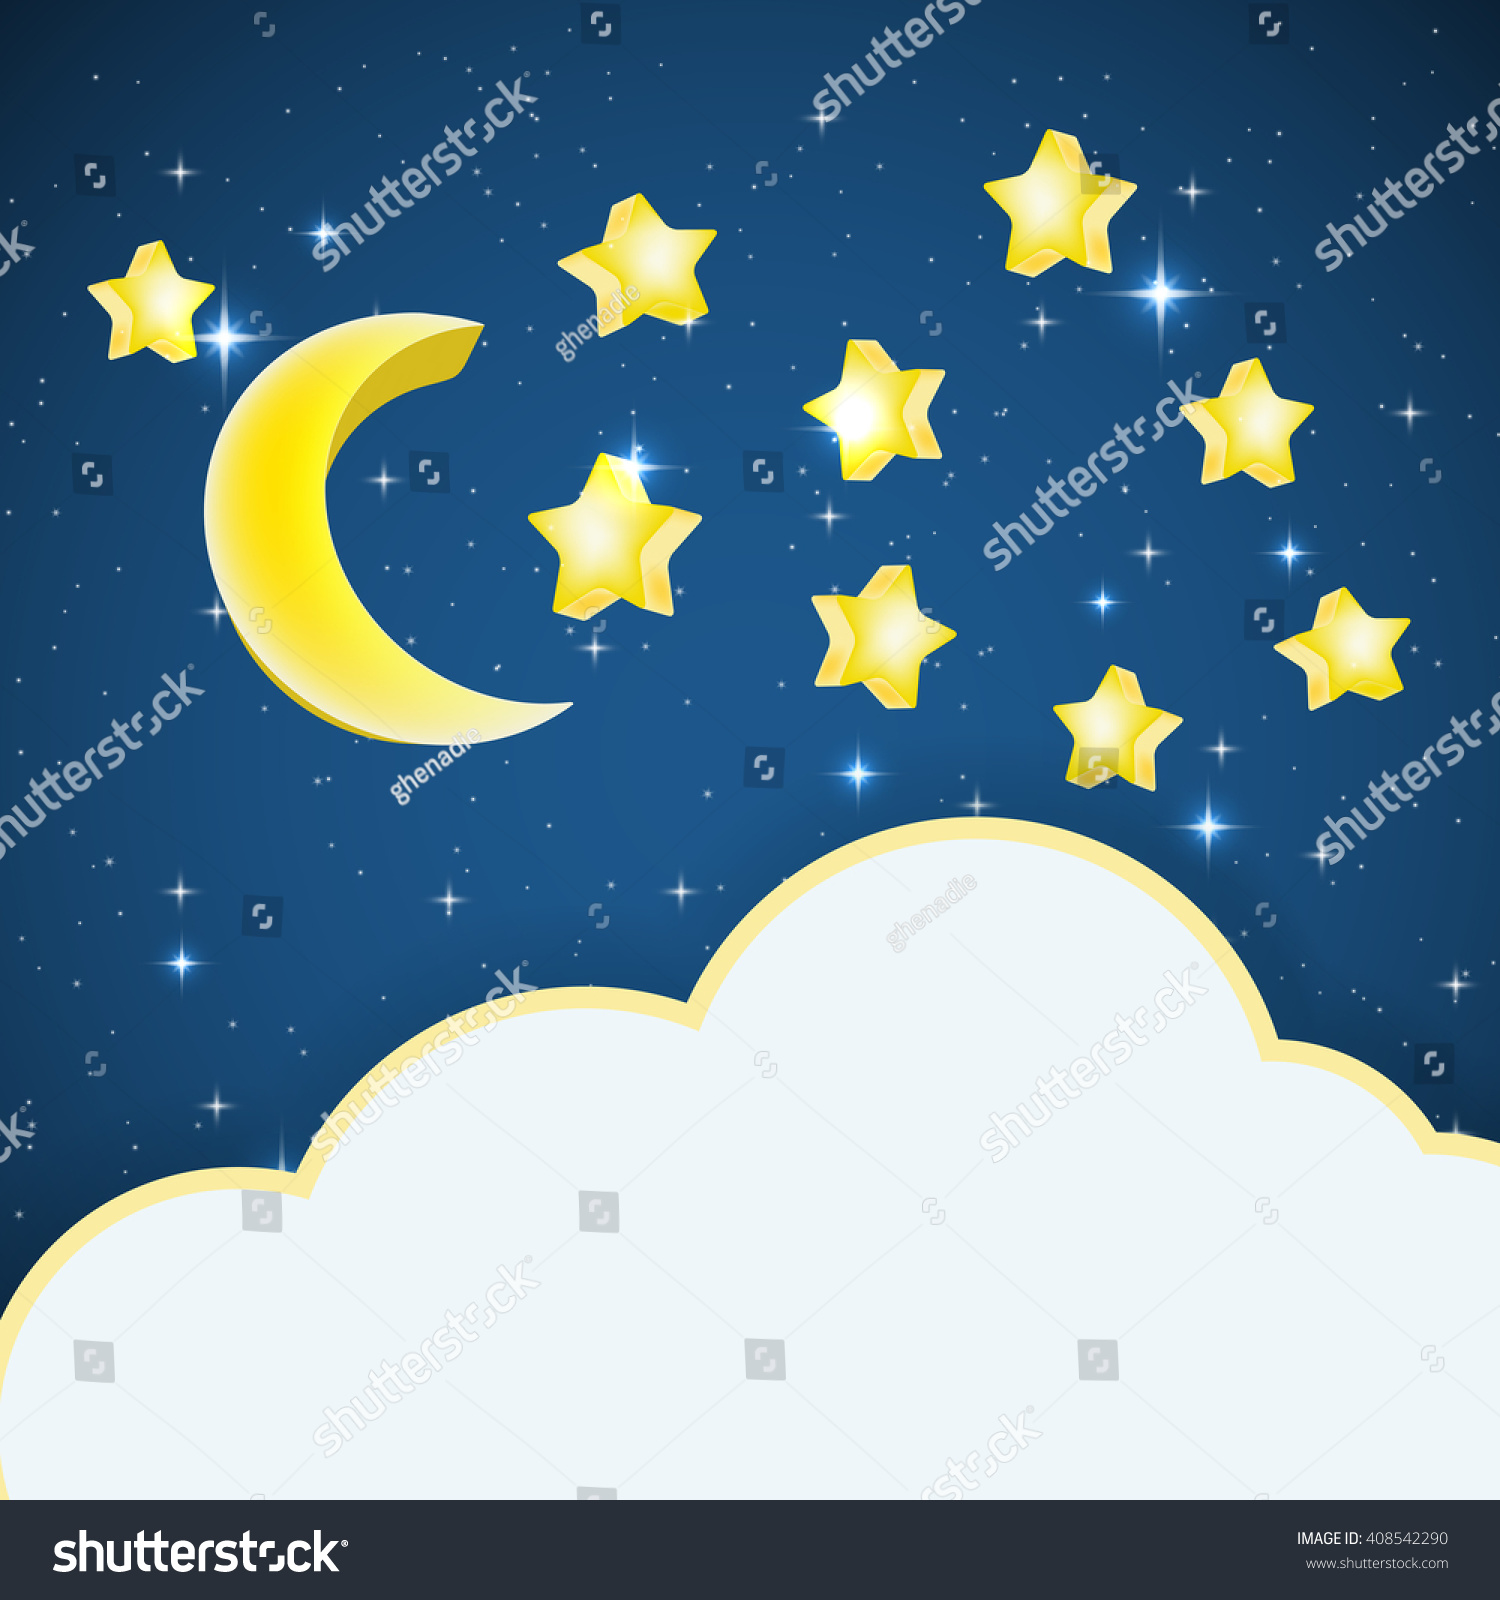 Exceptional Night Sky Background With Cartoon Stars And Moon And Cloud Frame For Text.  Vector Illustration